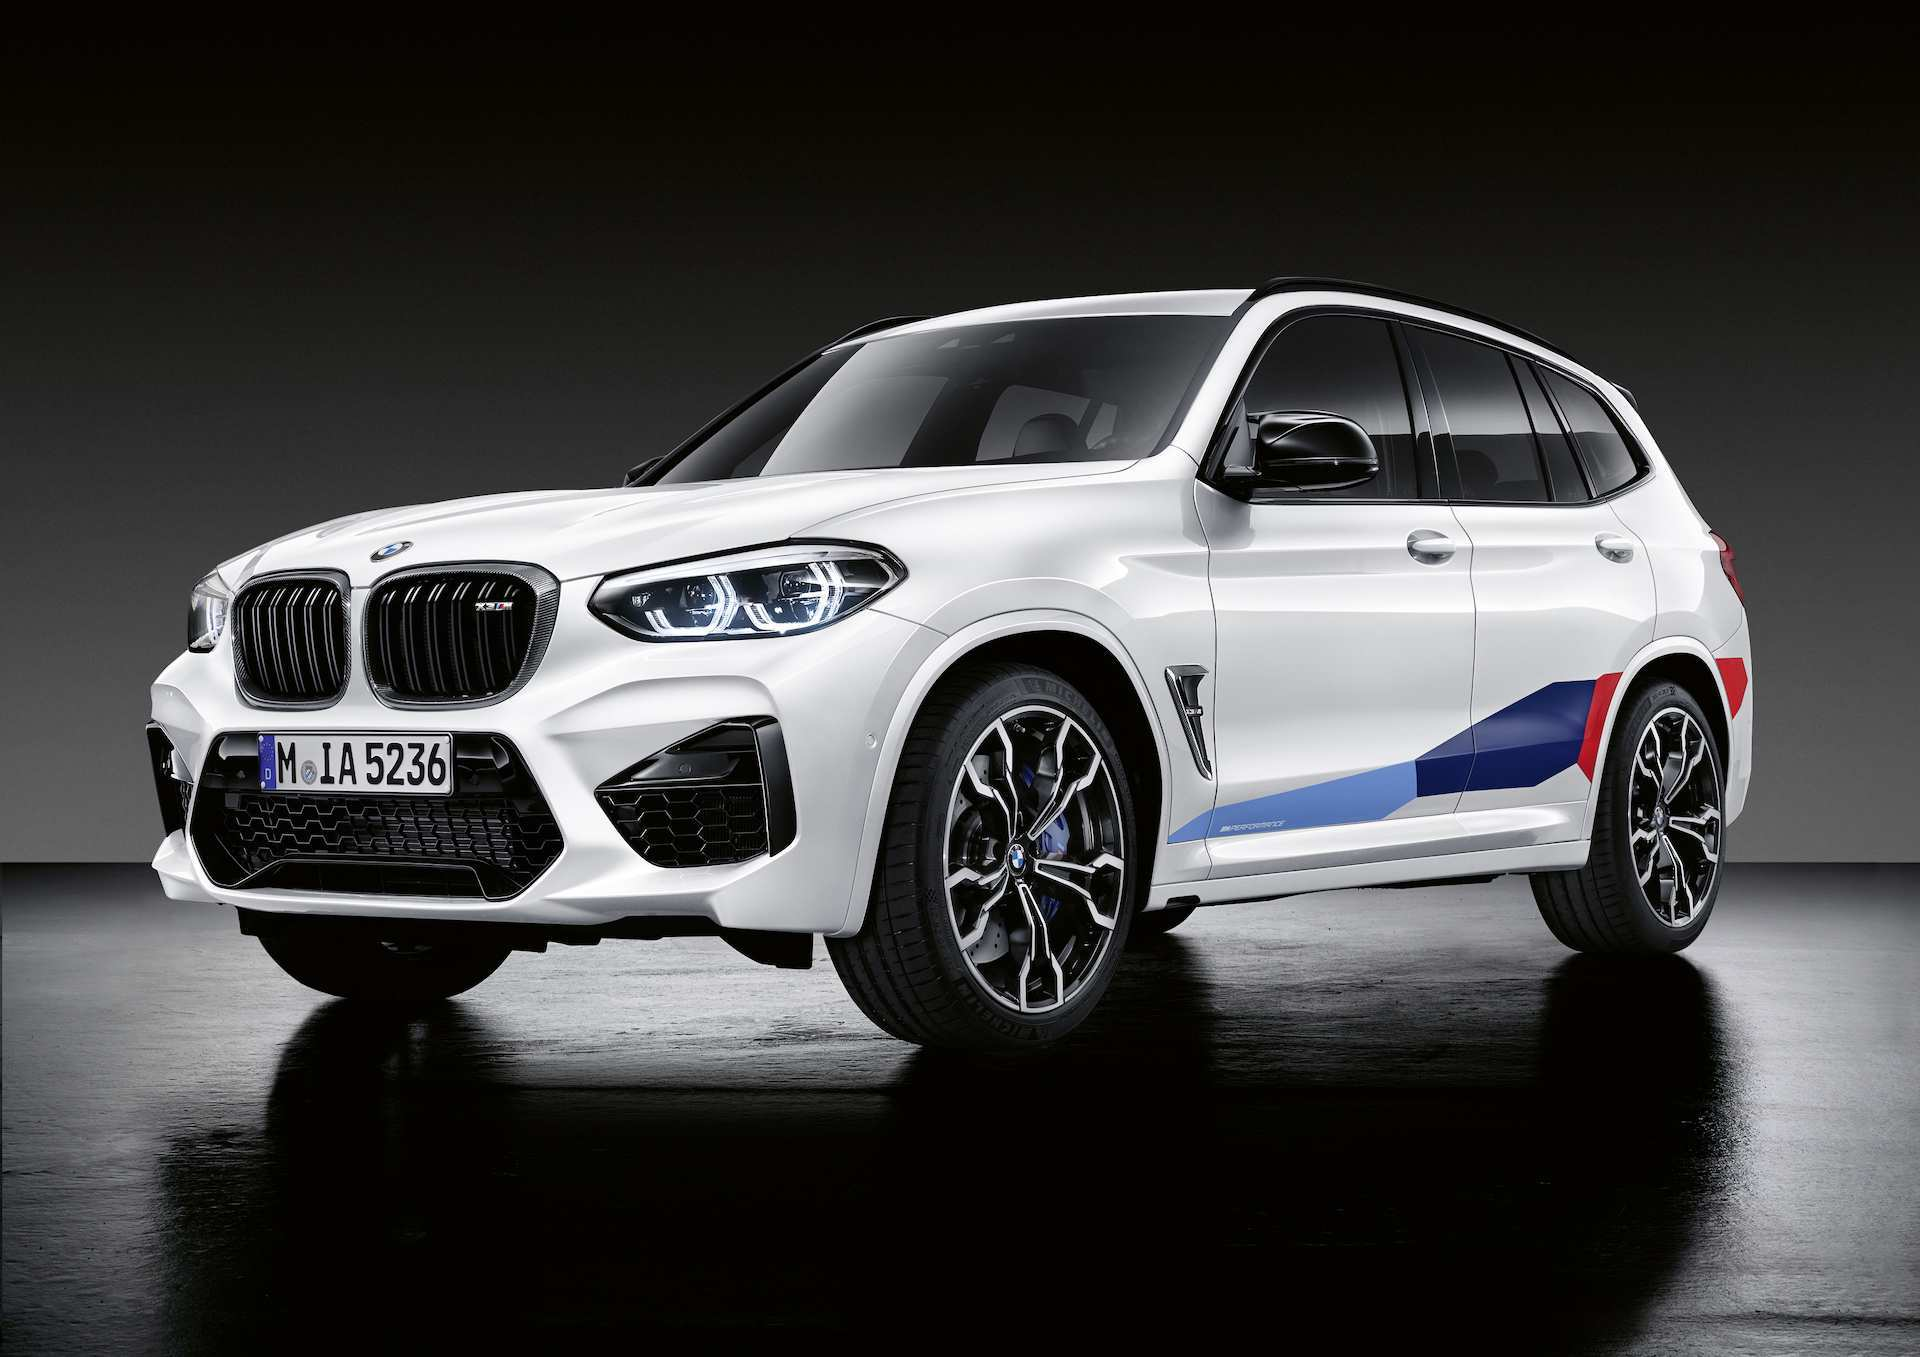 76 New BMW Releases 2020 Price by BMW Releases 2020